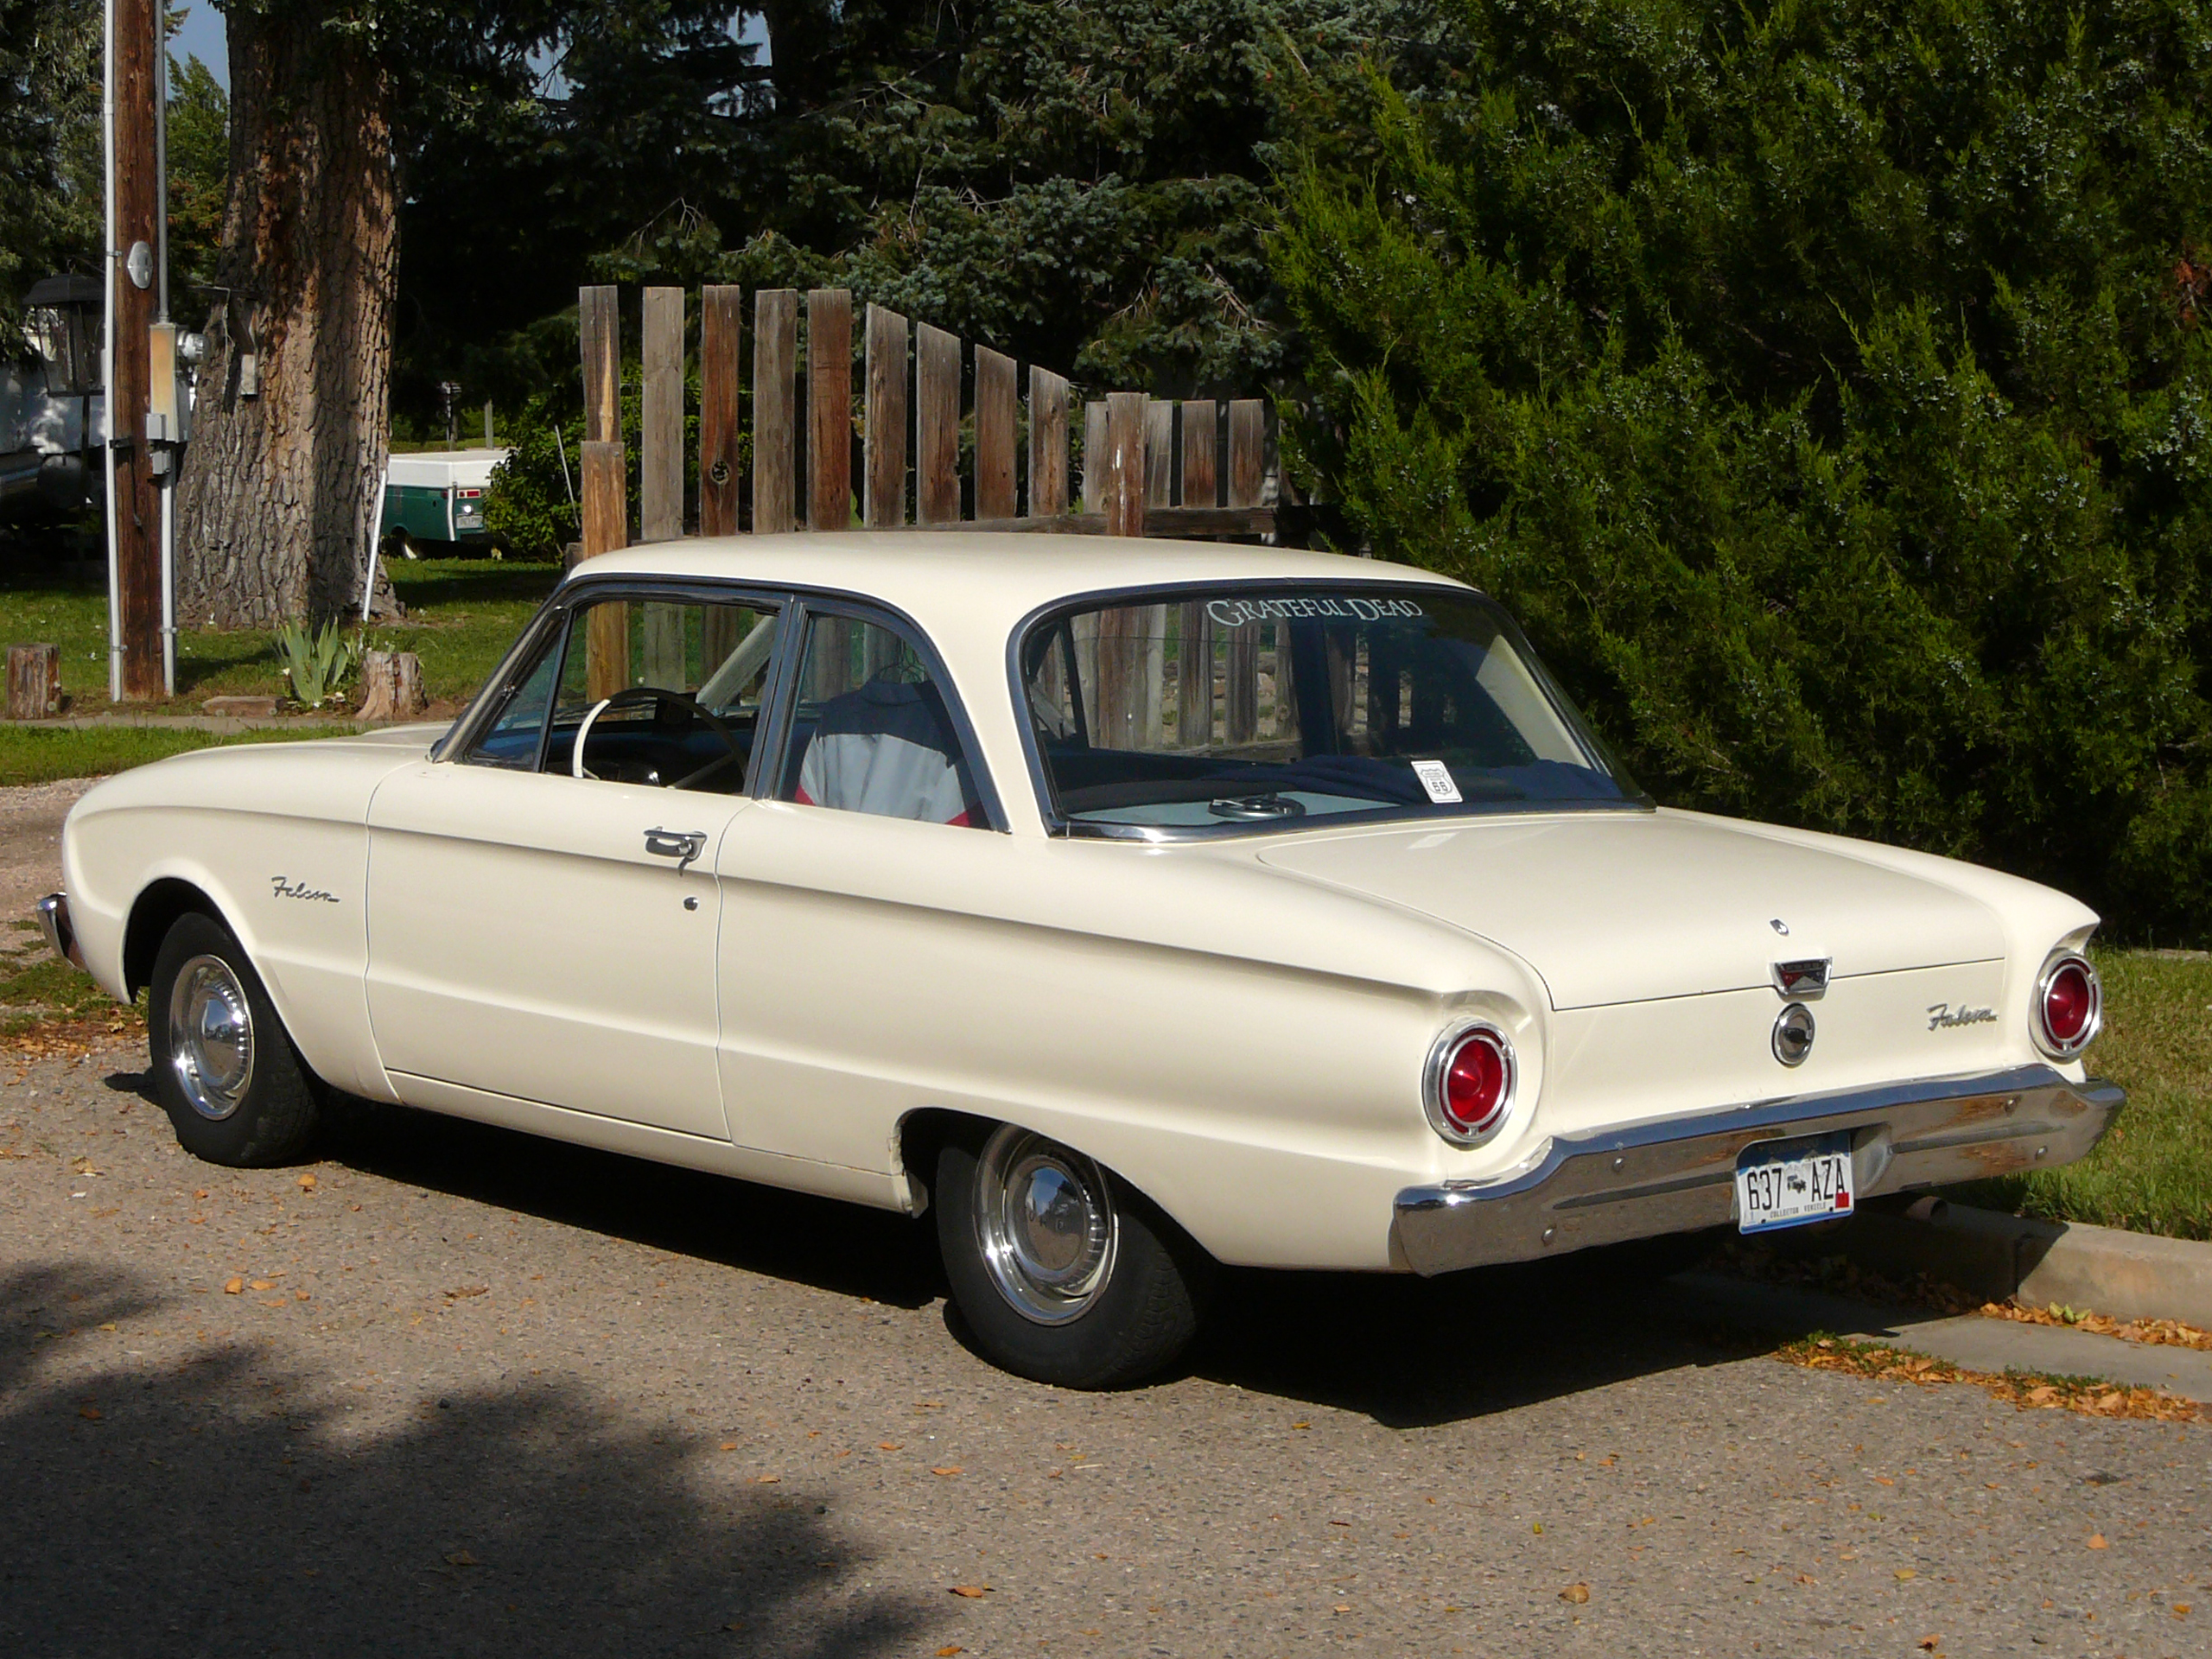 1961 Ford Galaxie Fuse Box Replacement Another Blog About Wiring Diagram For Comet And Falcon 6 All Models Still Dominating Shows Races Rh Zombdrive Com